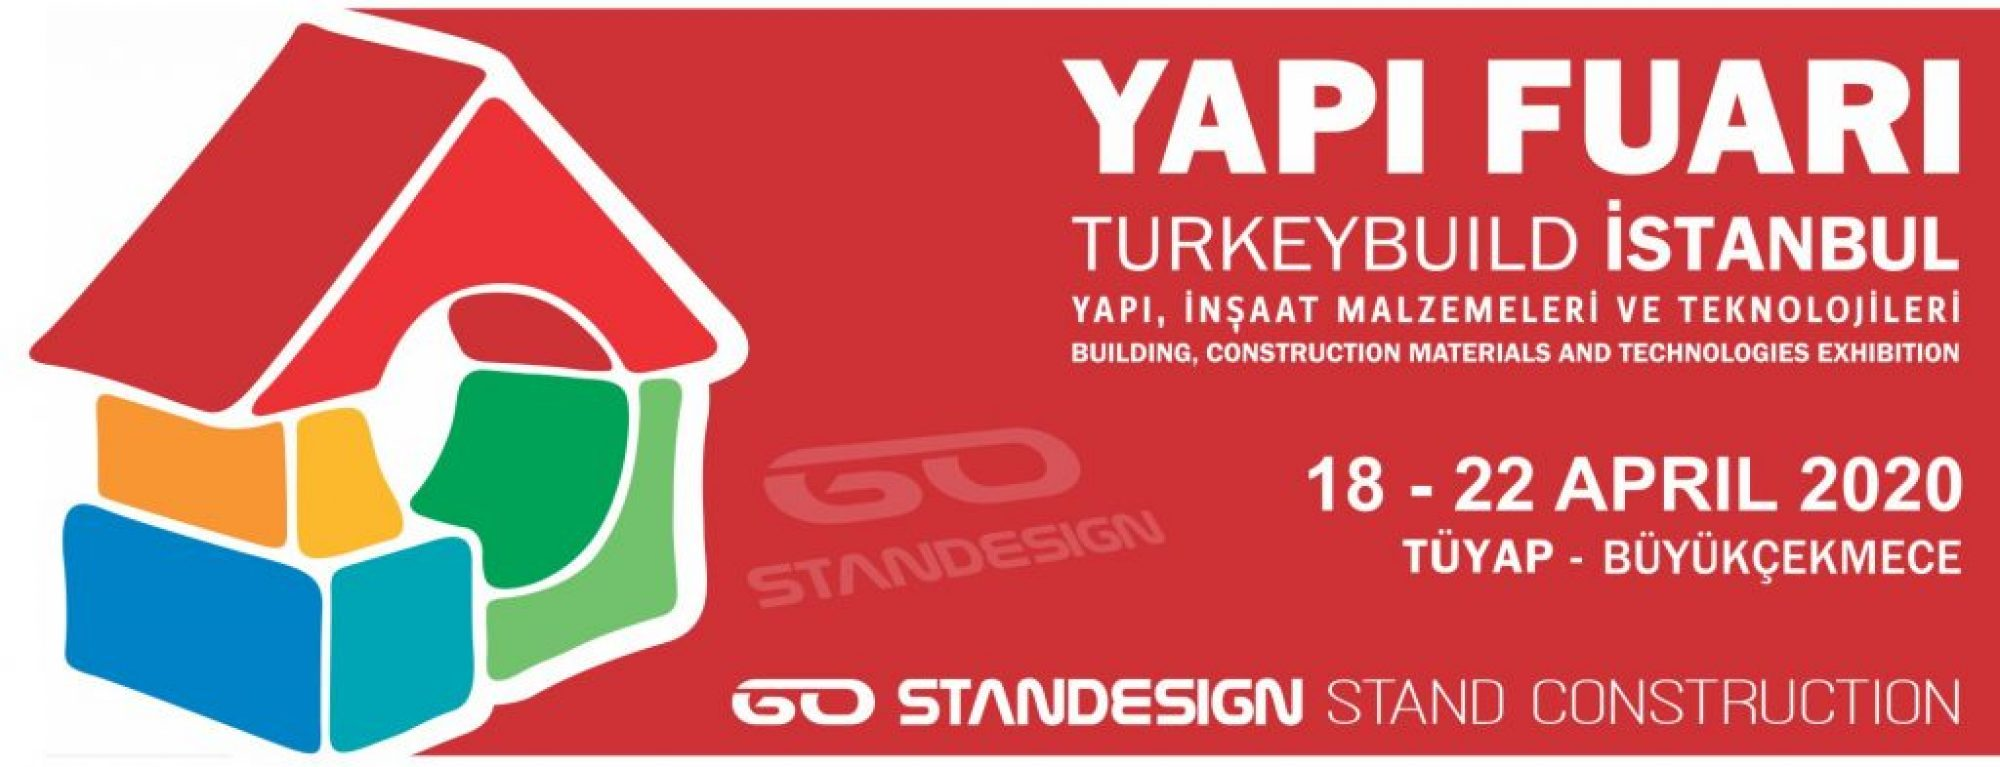 Yapi TurkeyBuild Istanbul 2020 International Building Materials and Technologies Fair Turkey